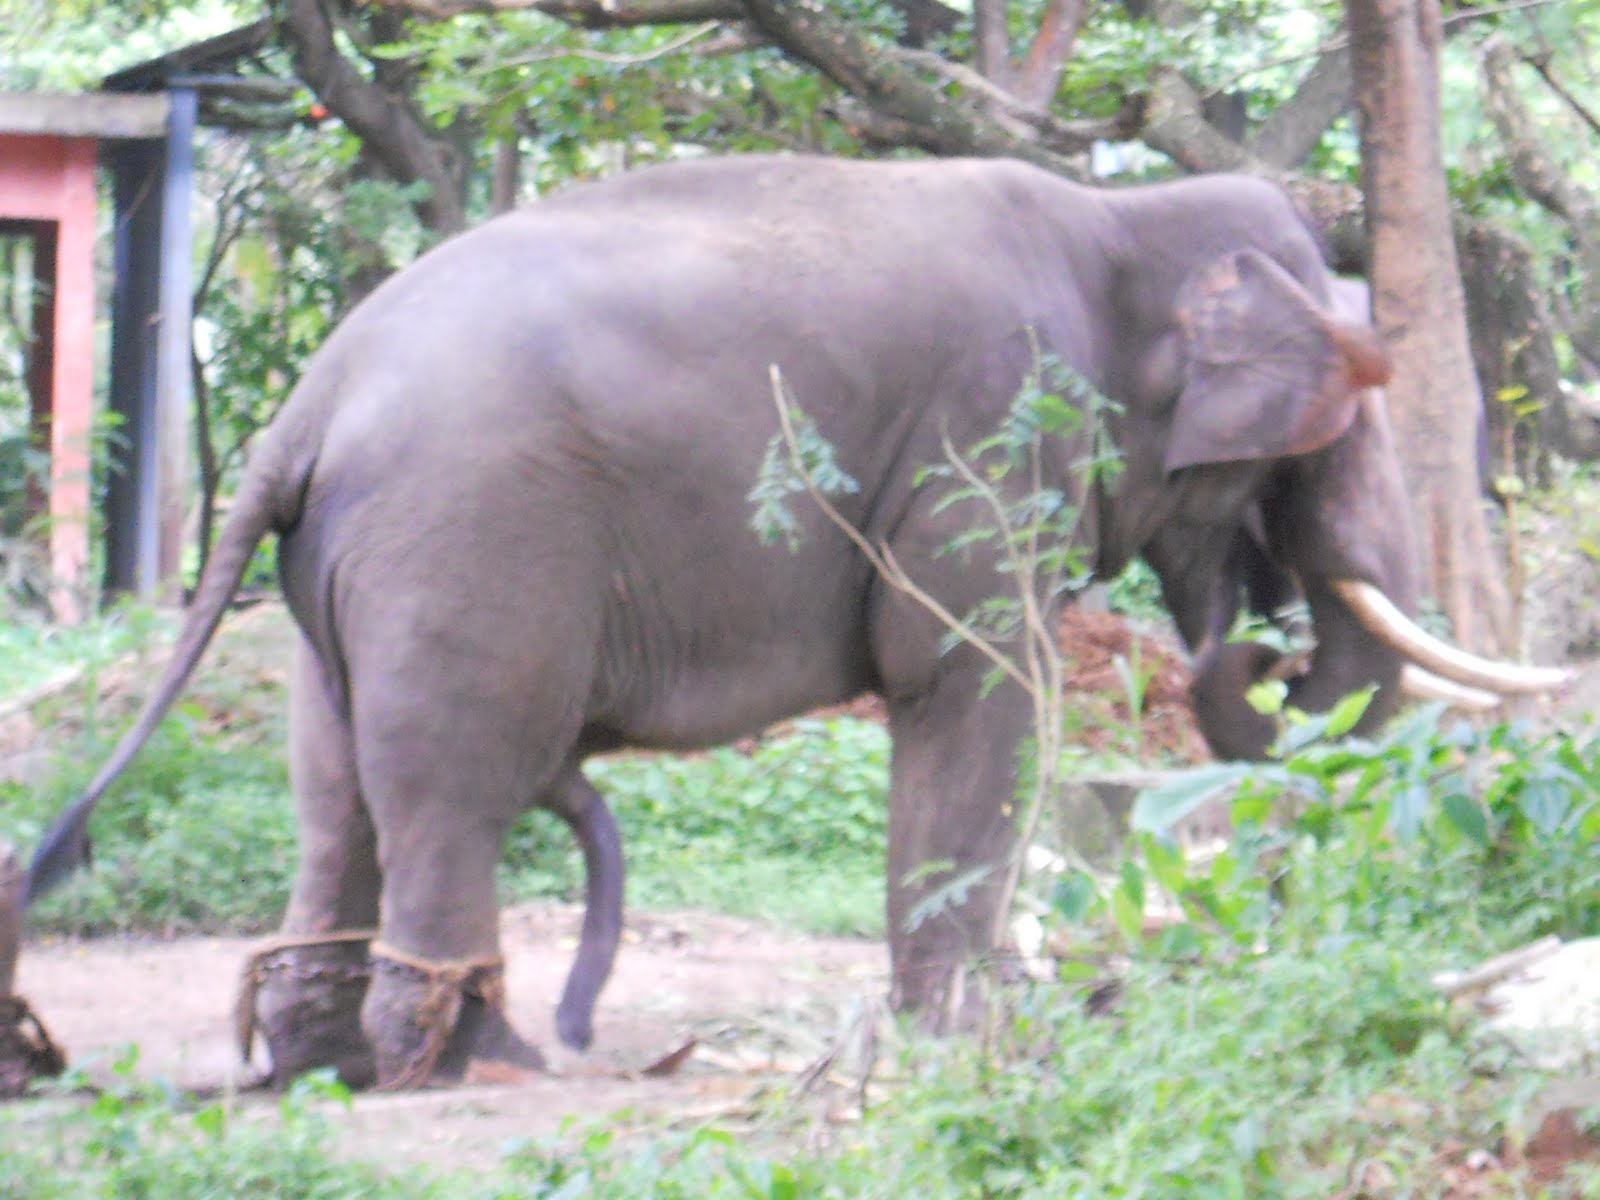 wallpapers name: Elephants in kerala